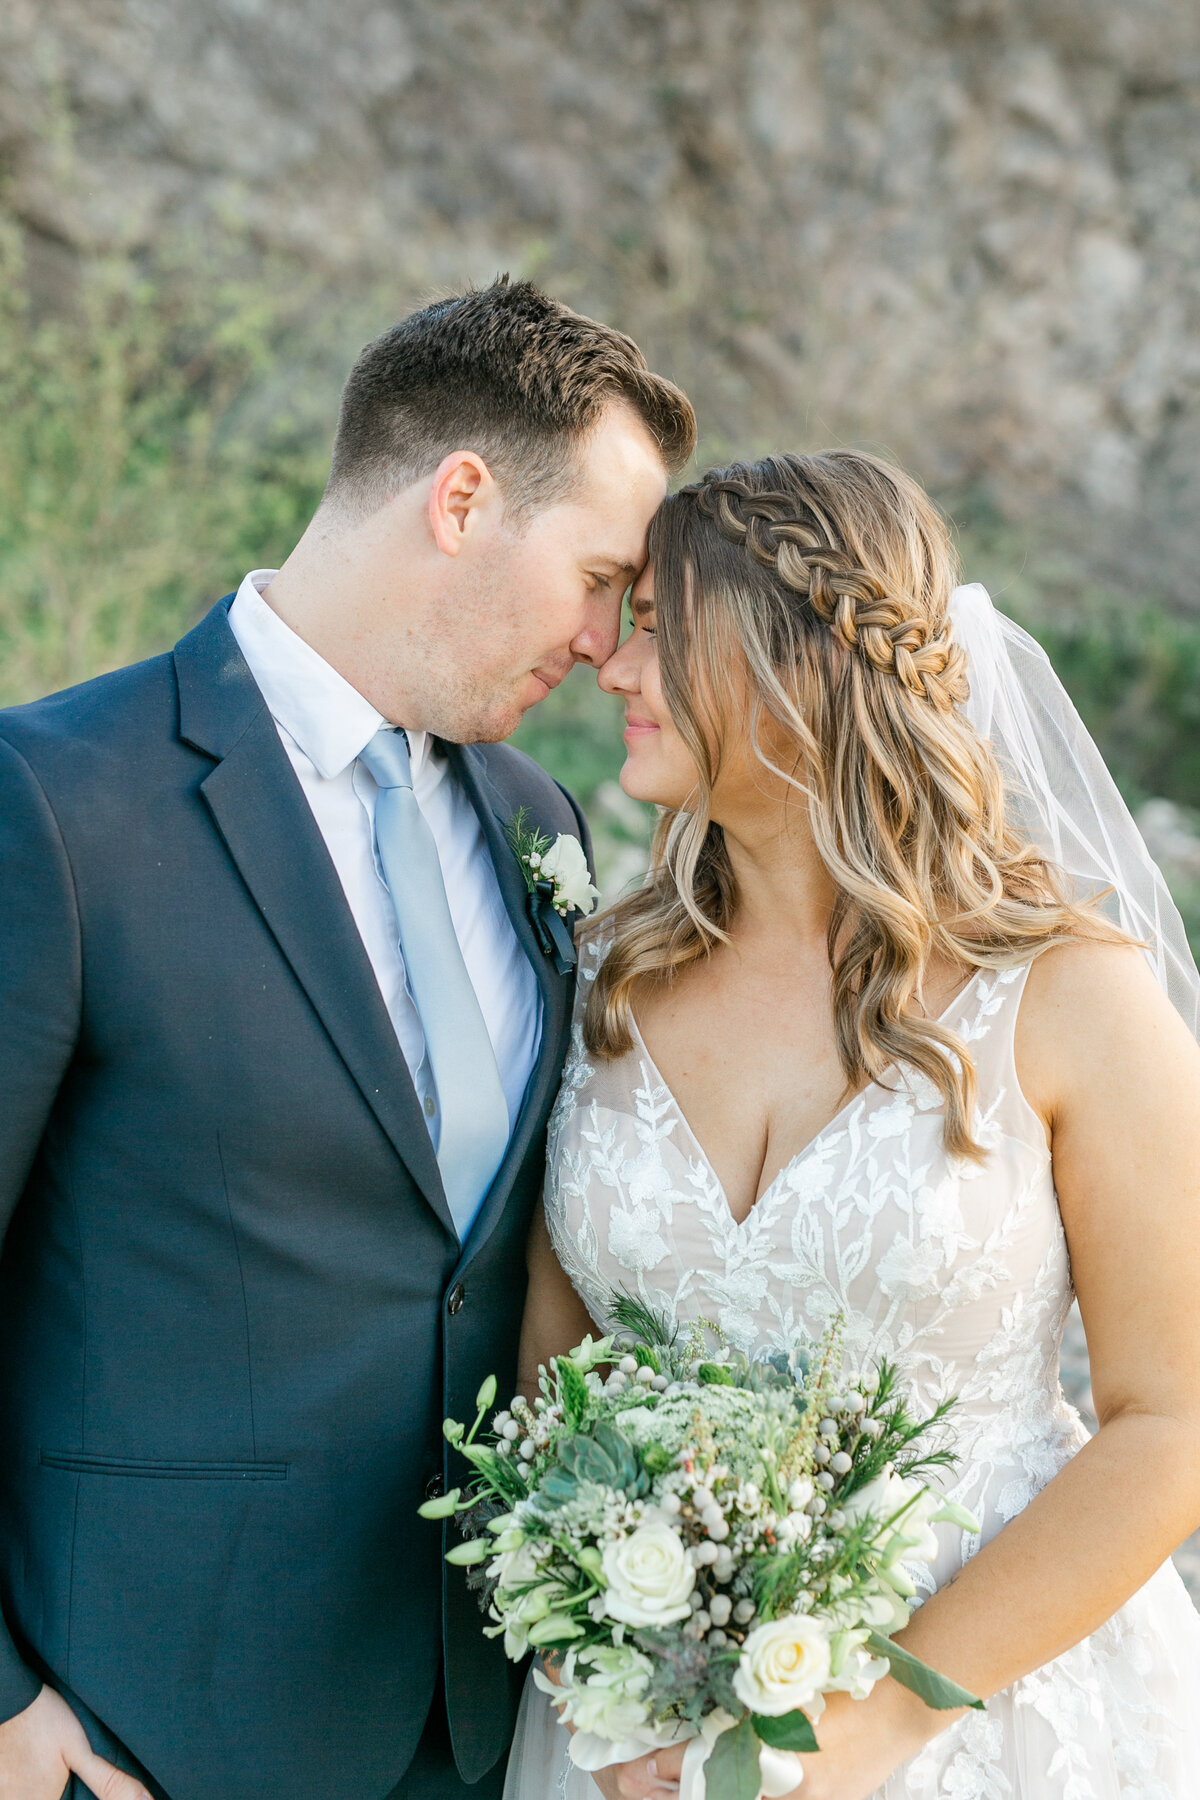 Karlie Colleen Photography - Arizona Backyard wedding - Brittney & Josh-222